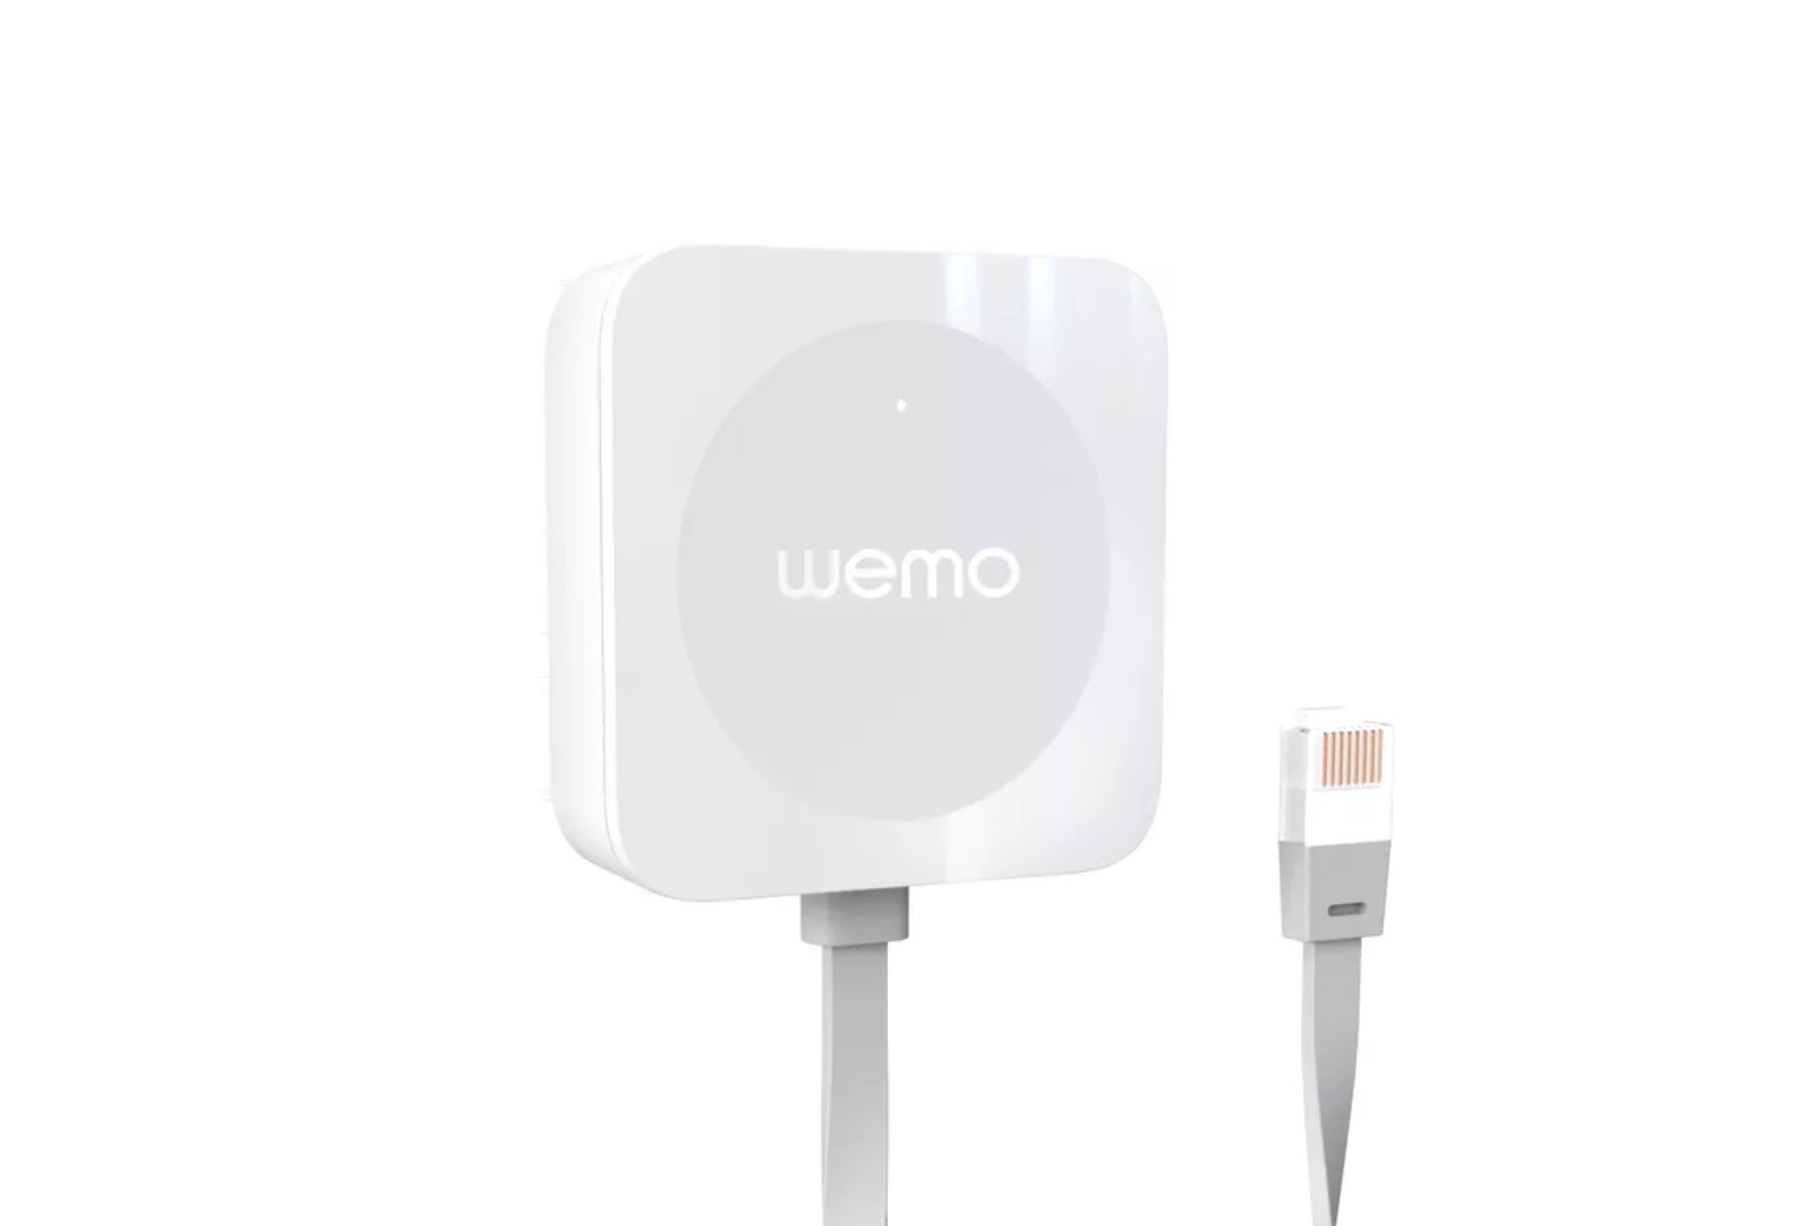 CES 2018: Belkin's Wemo line gains Apple HomeKit support